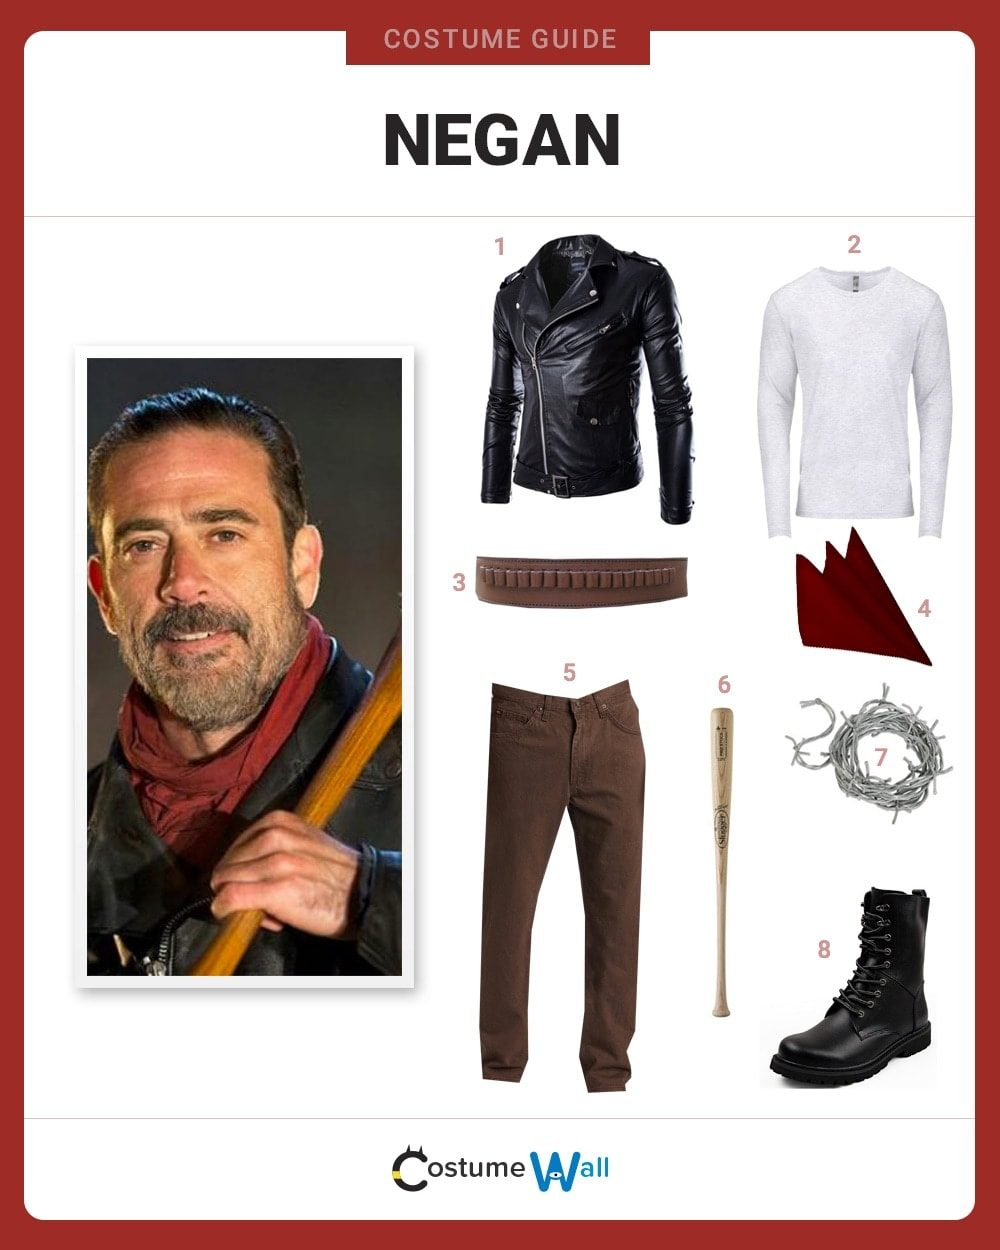 Negan Costume Guide